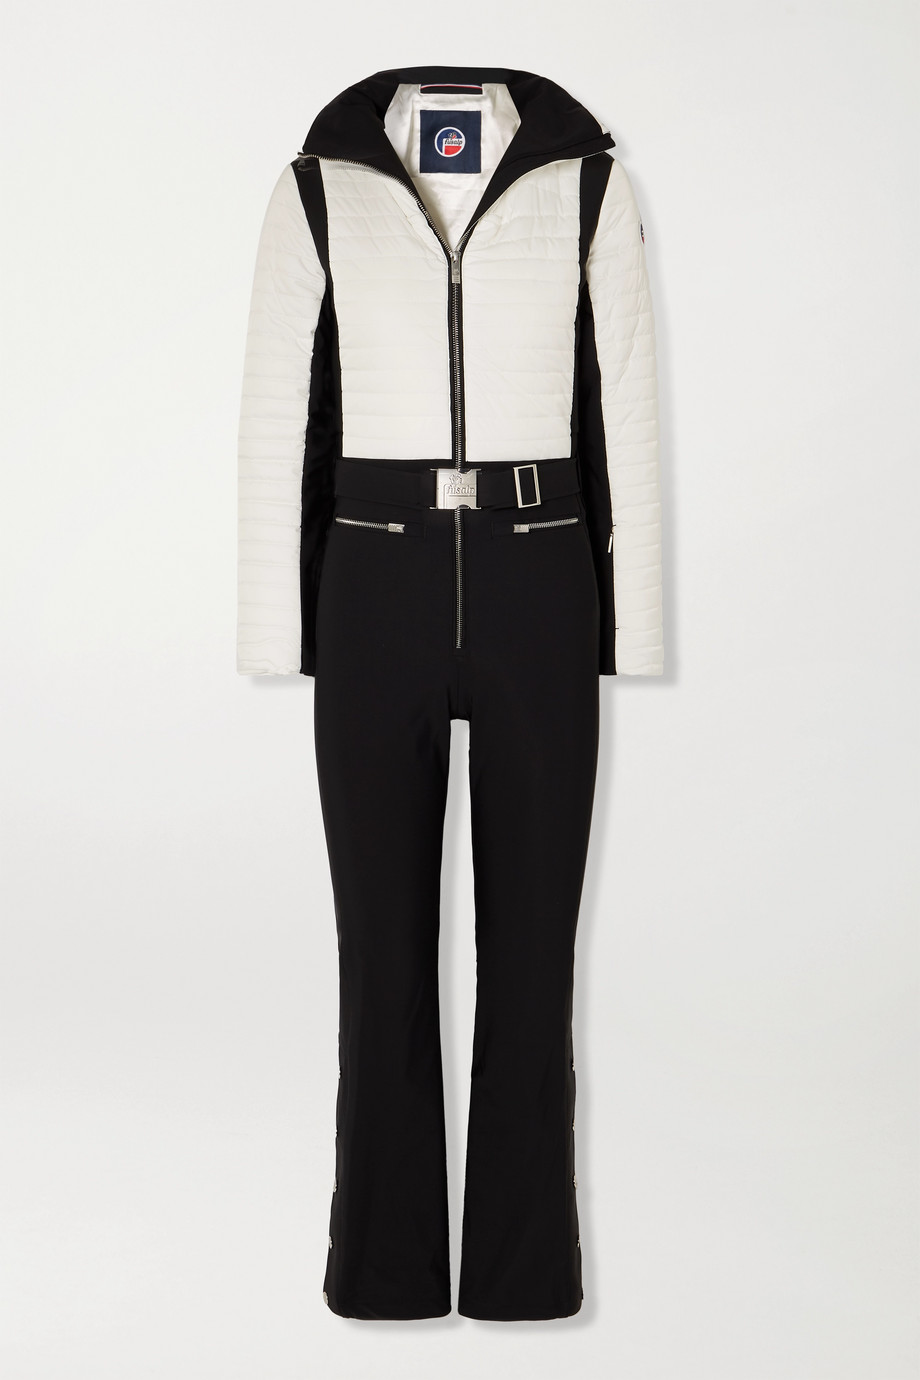 Fusalp Crouze two-tone quilted ski suit